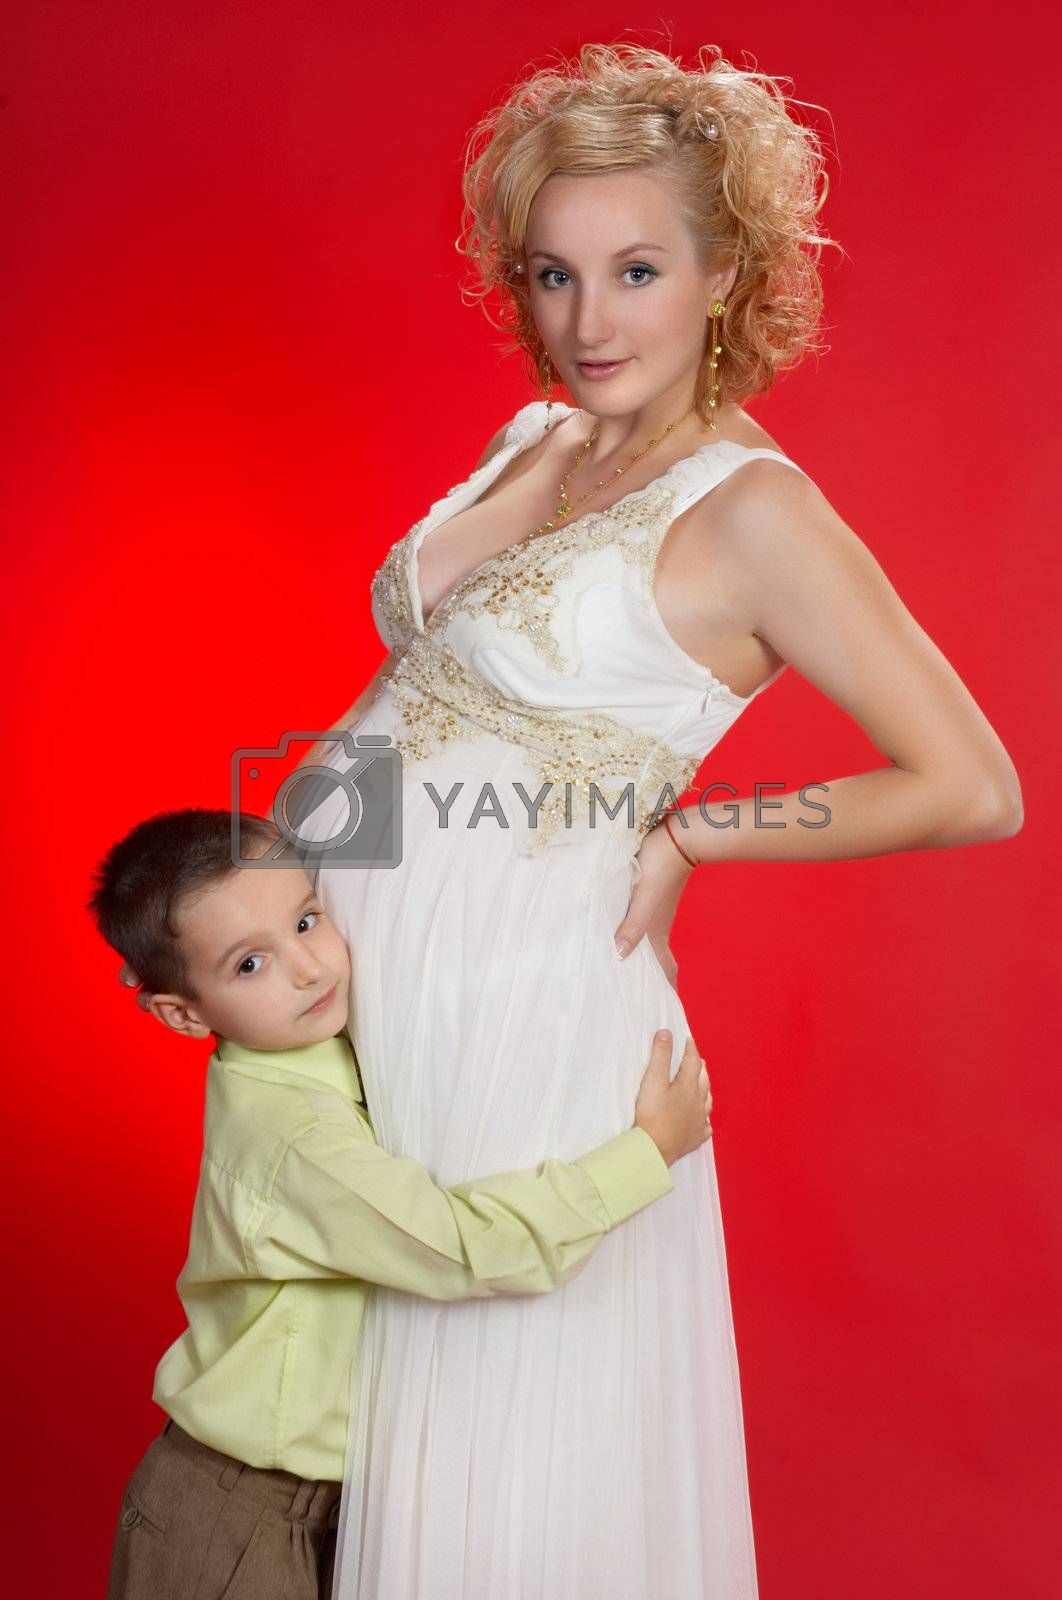 gorgeous pregnant blond woman with her first child together. on red background.